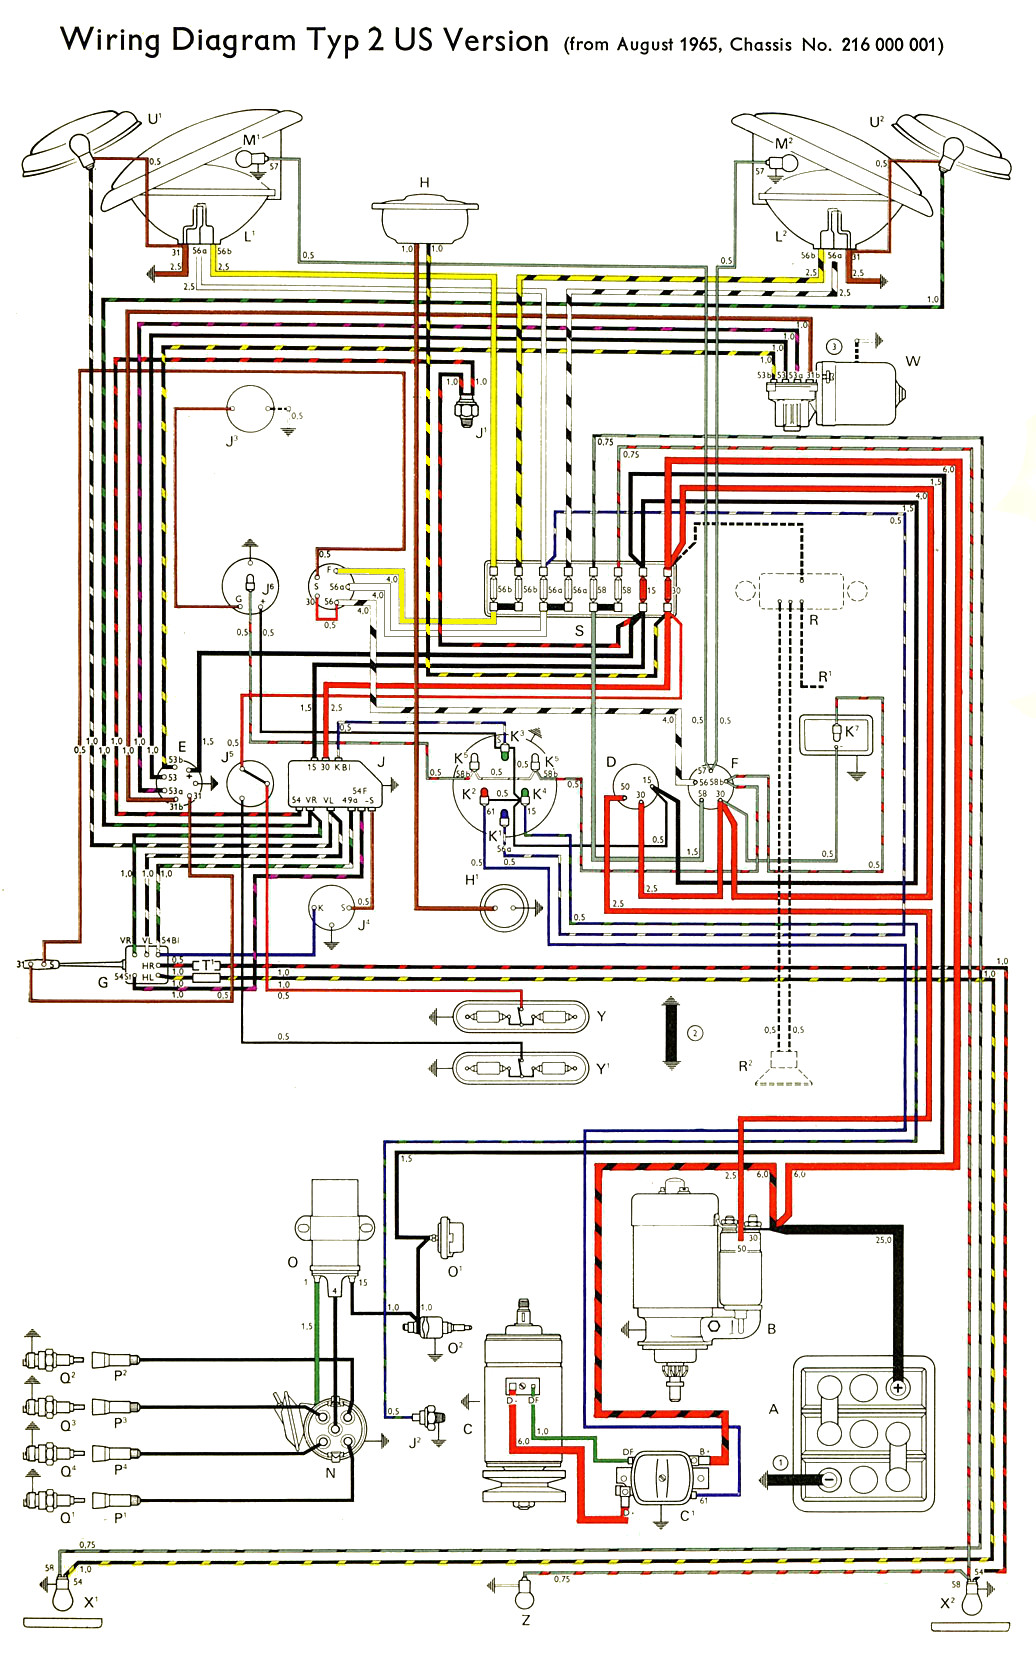 bus_66_USA thesamba com type 2 wiring diagrams vw phaeton fuse box diagram at mifinder.co